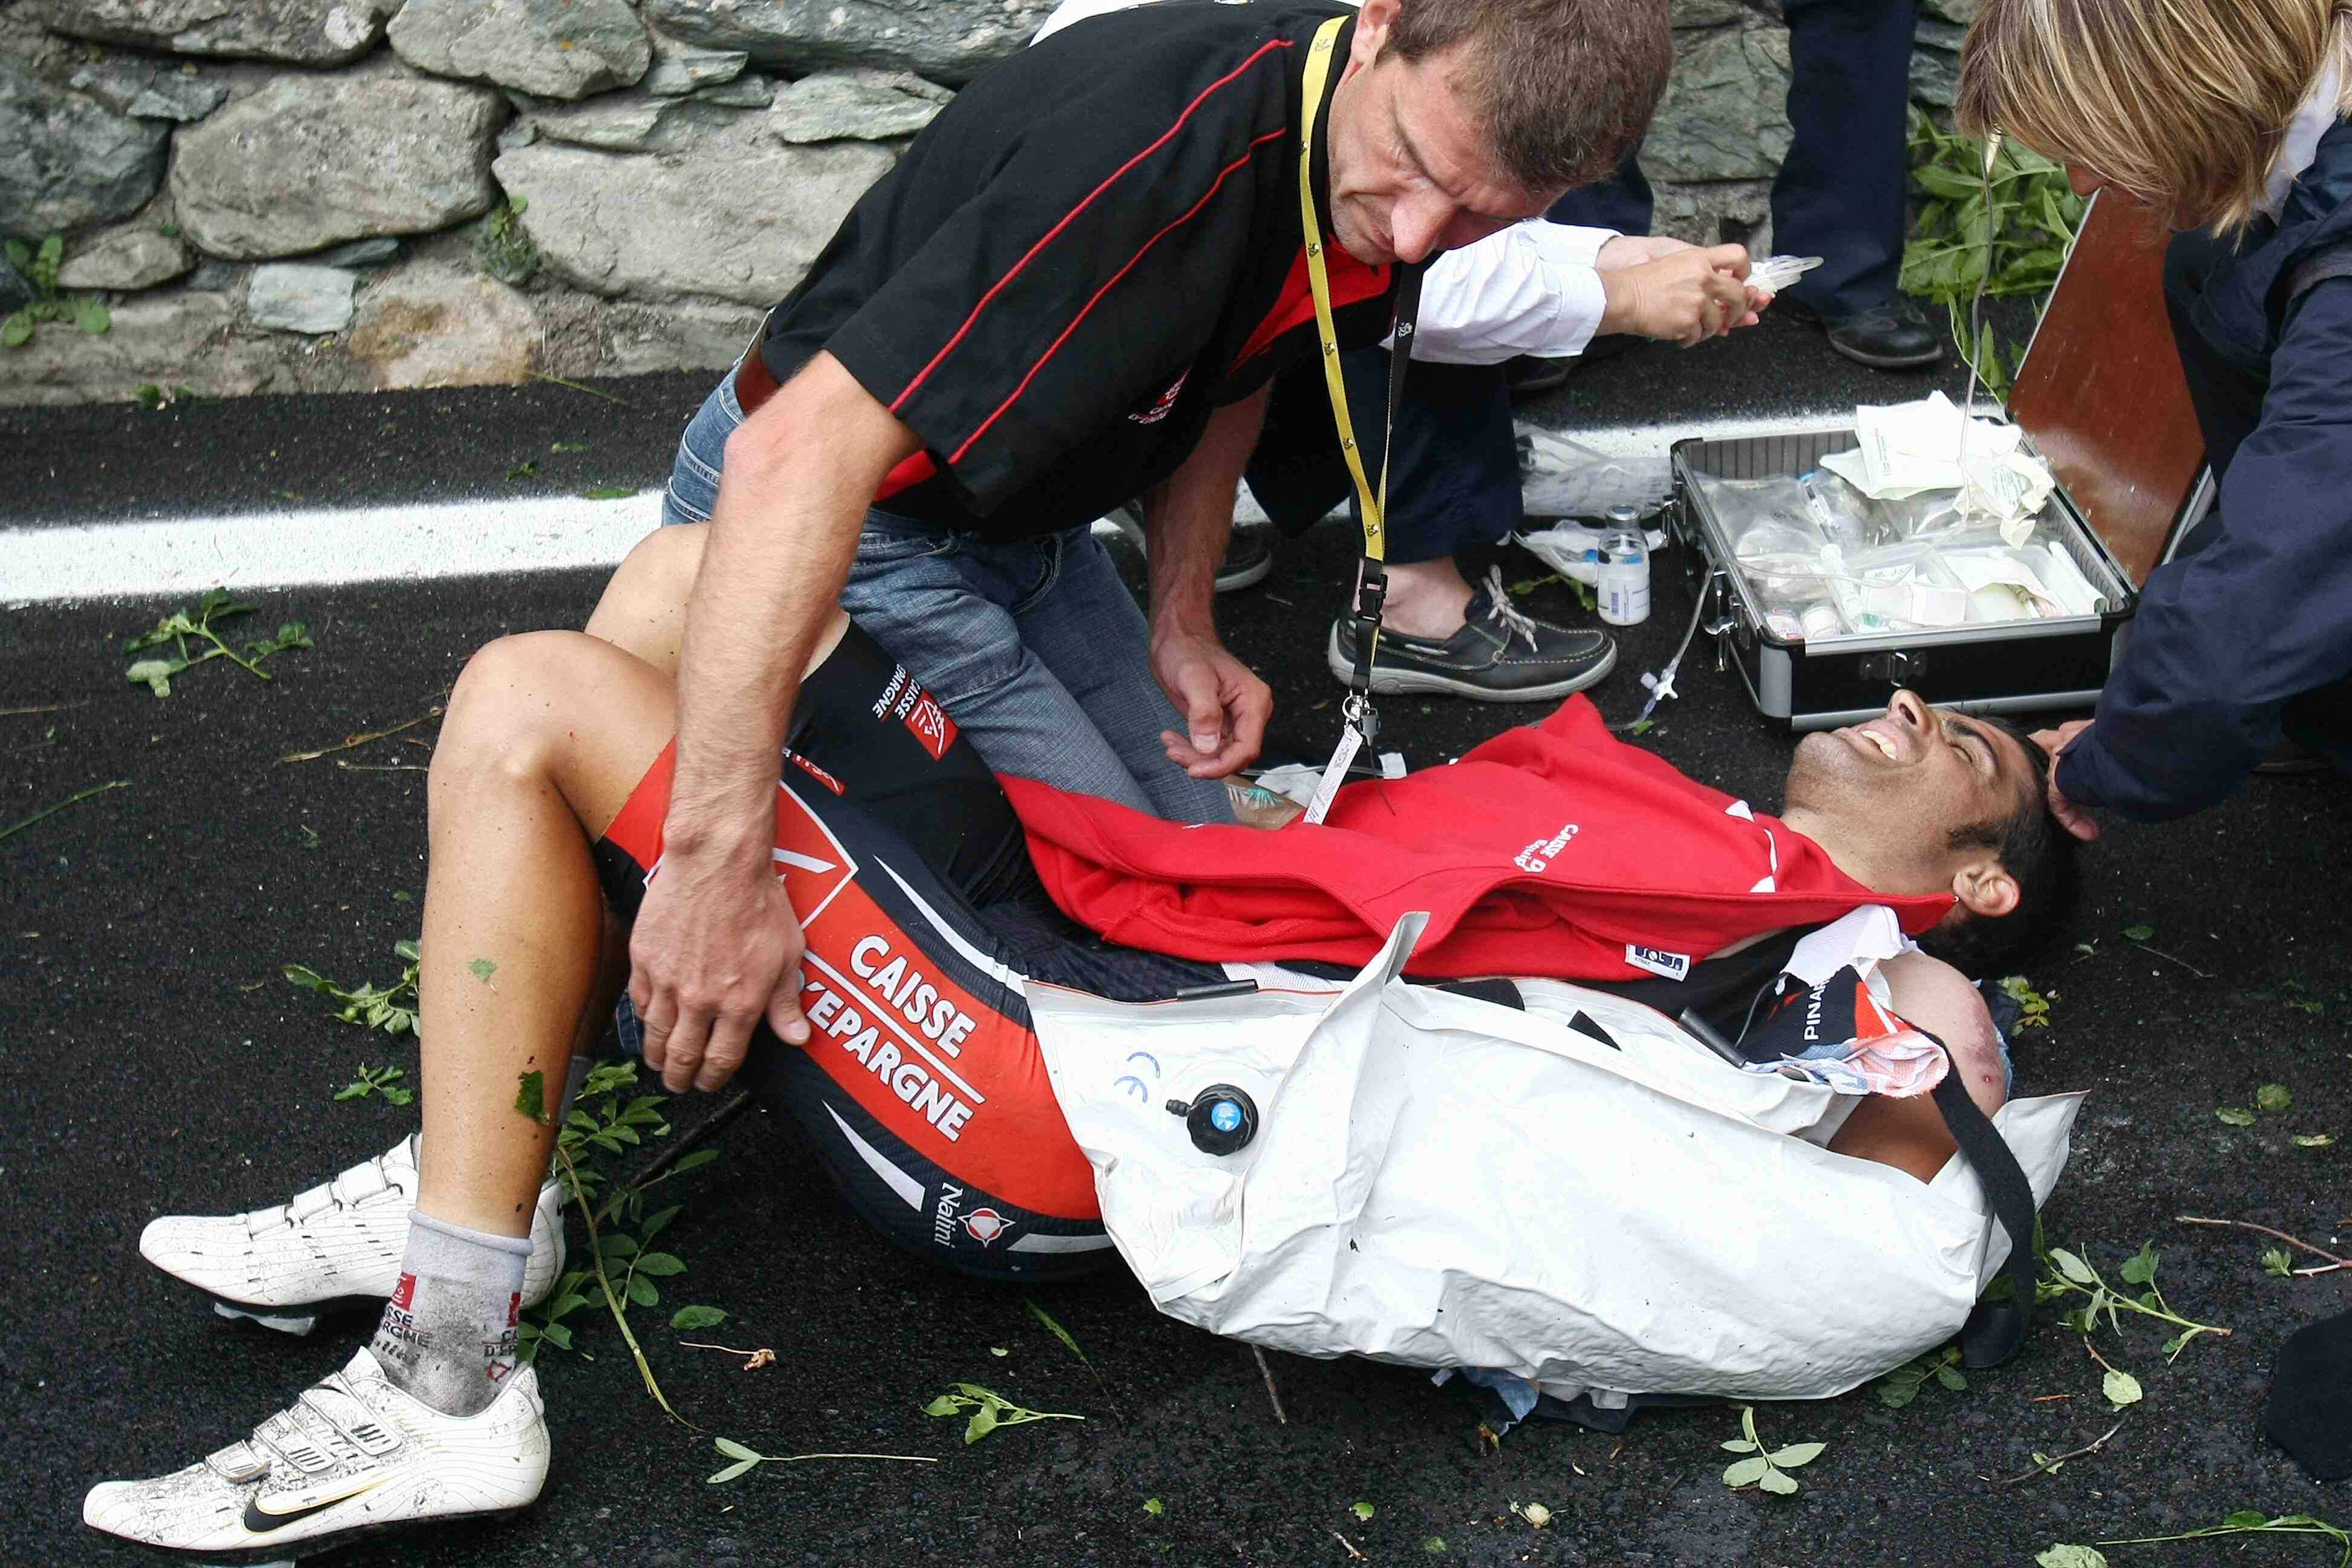 Spain's Oscar Pereiro crashed out on Stage 15 into Italy.